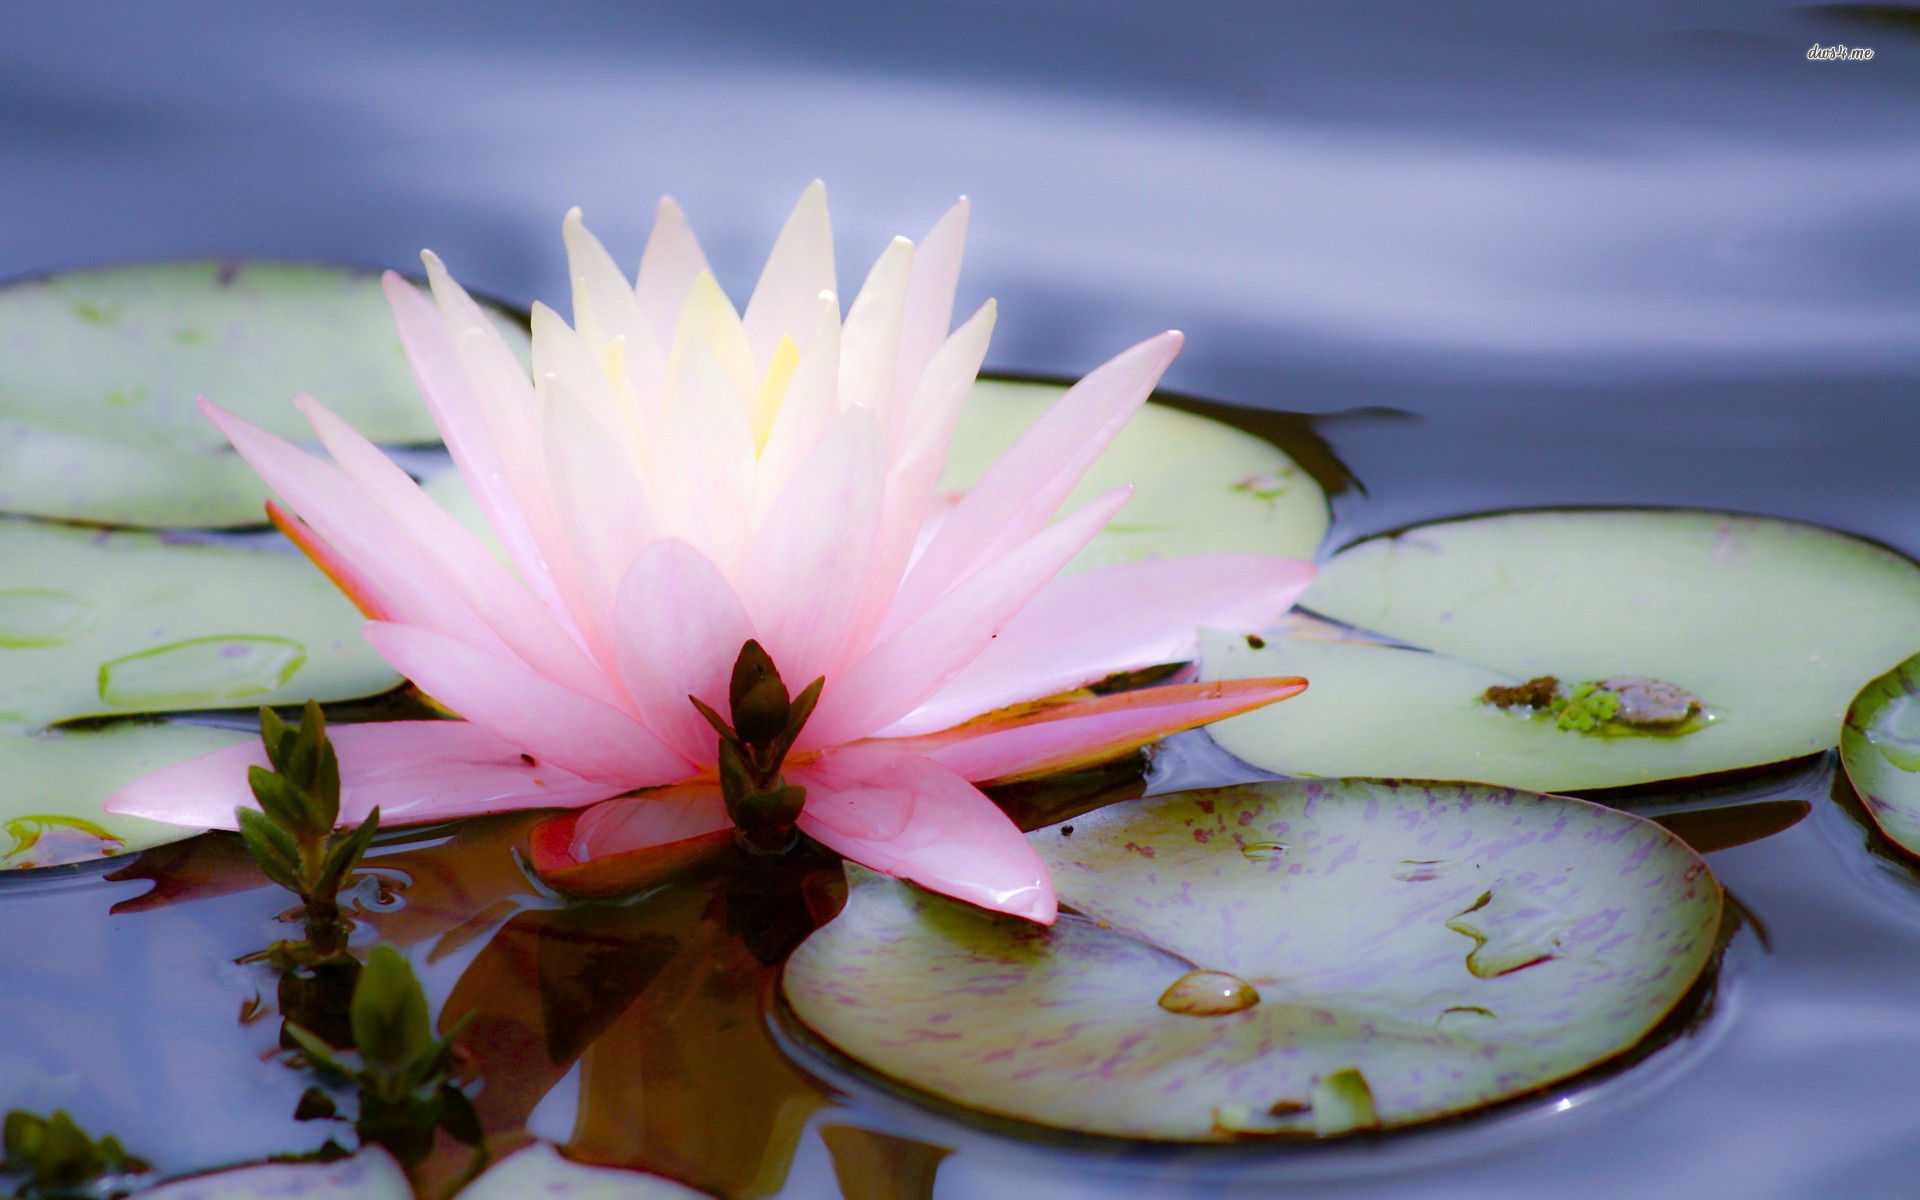 Lotus Flower Live Wallpaper Amazon Appstore For Android